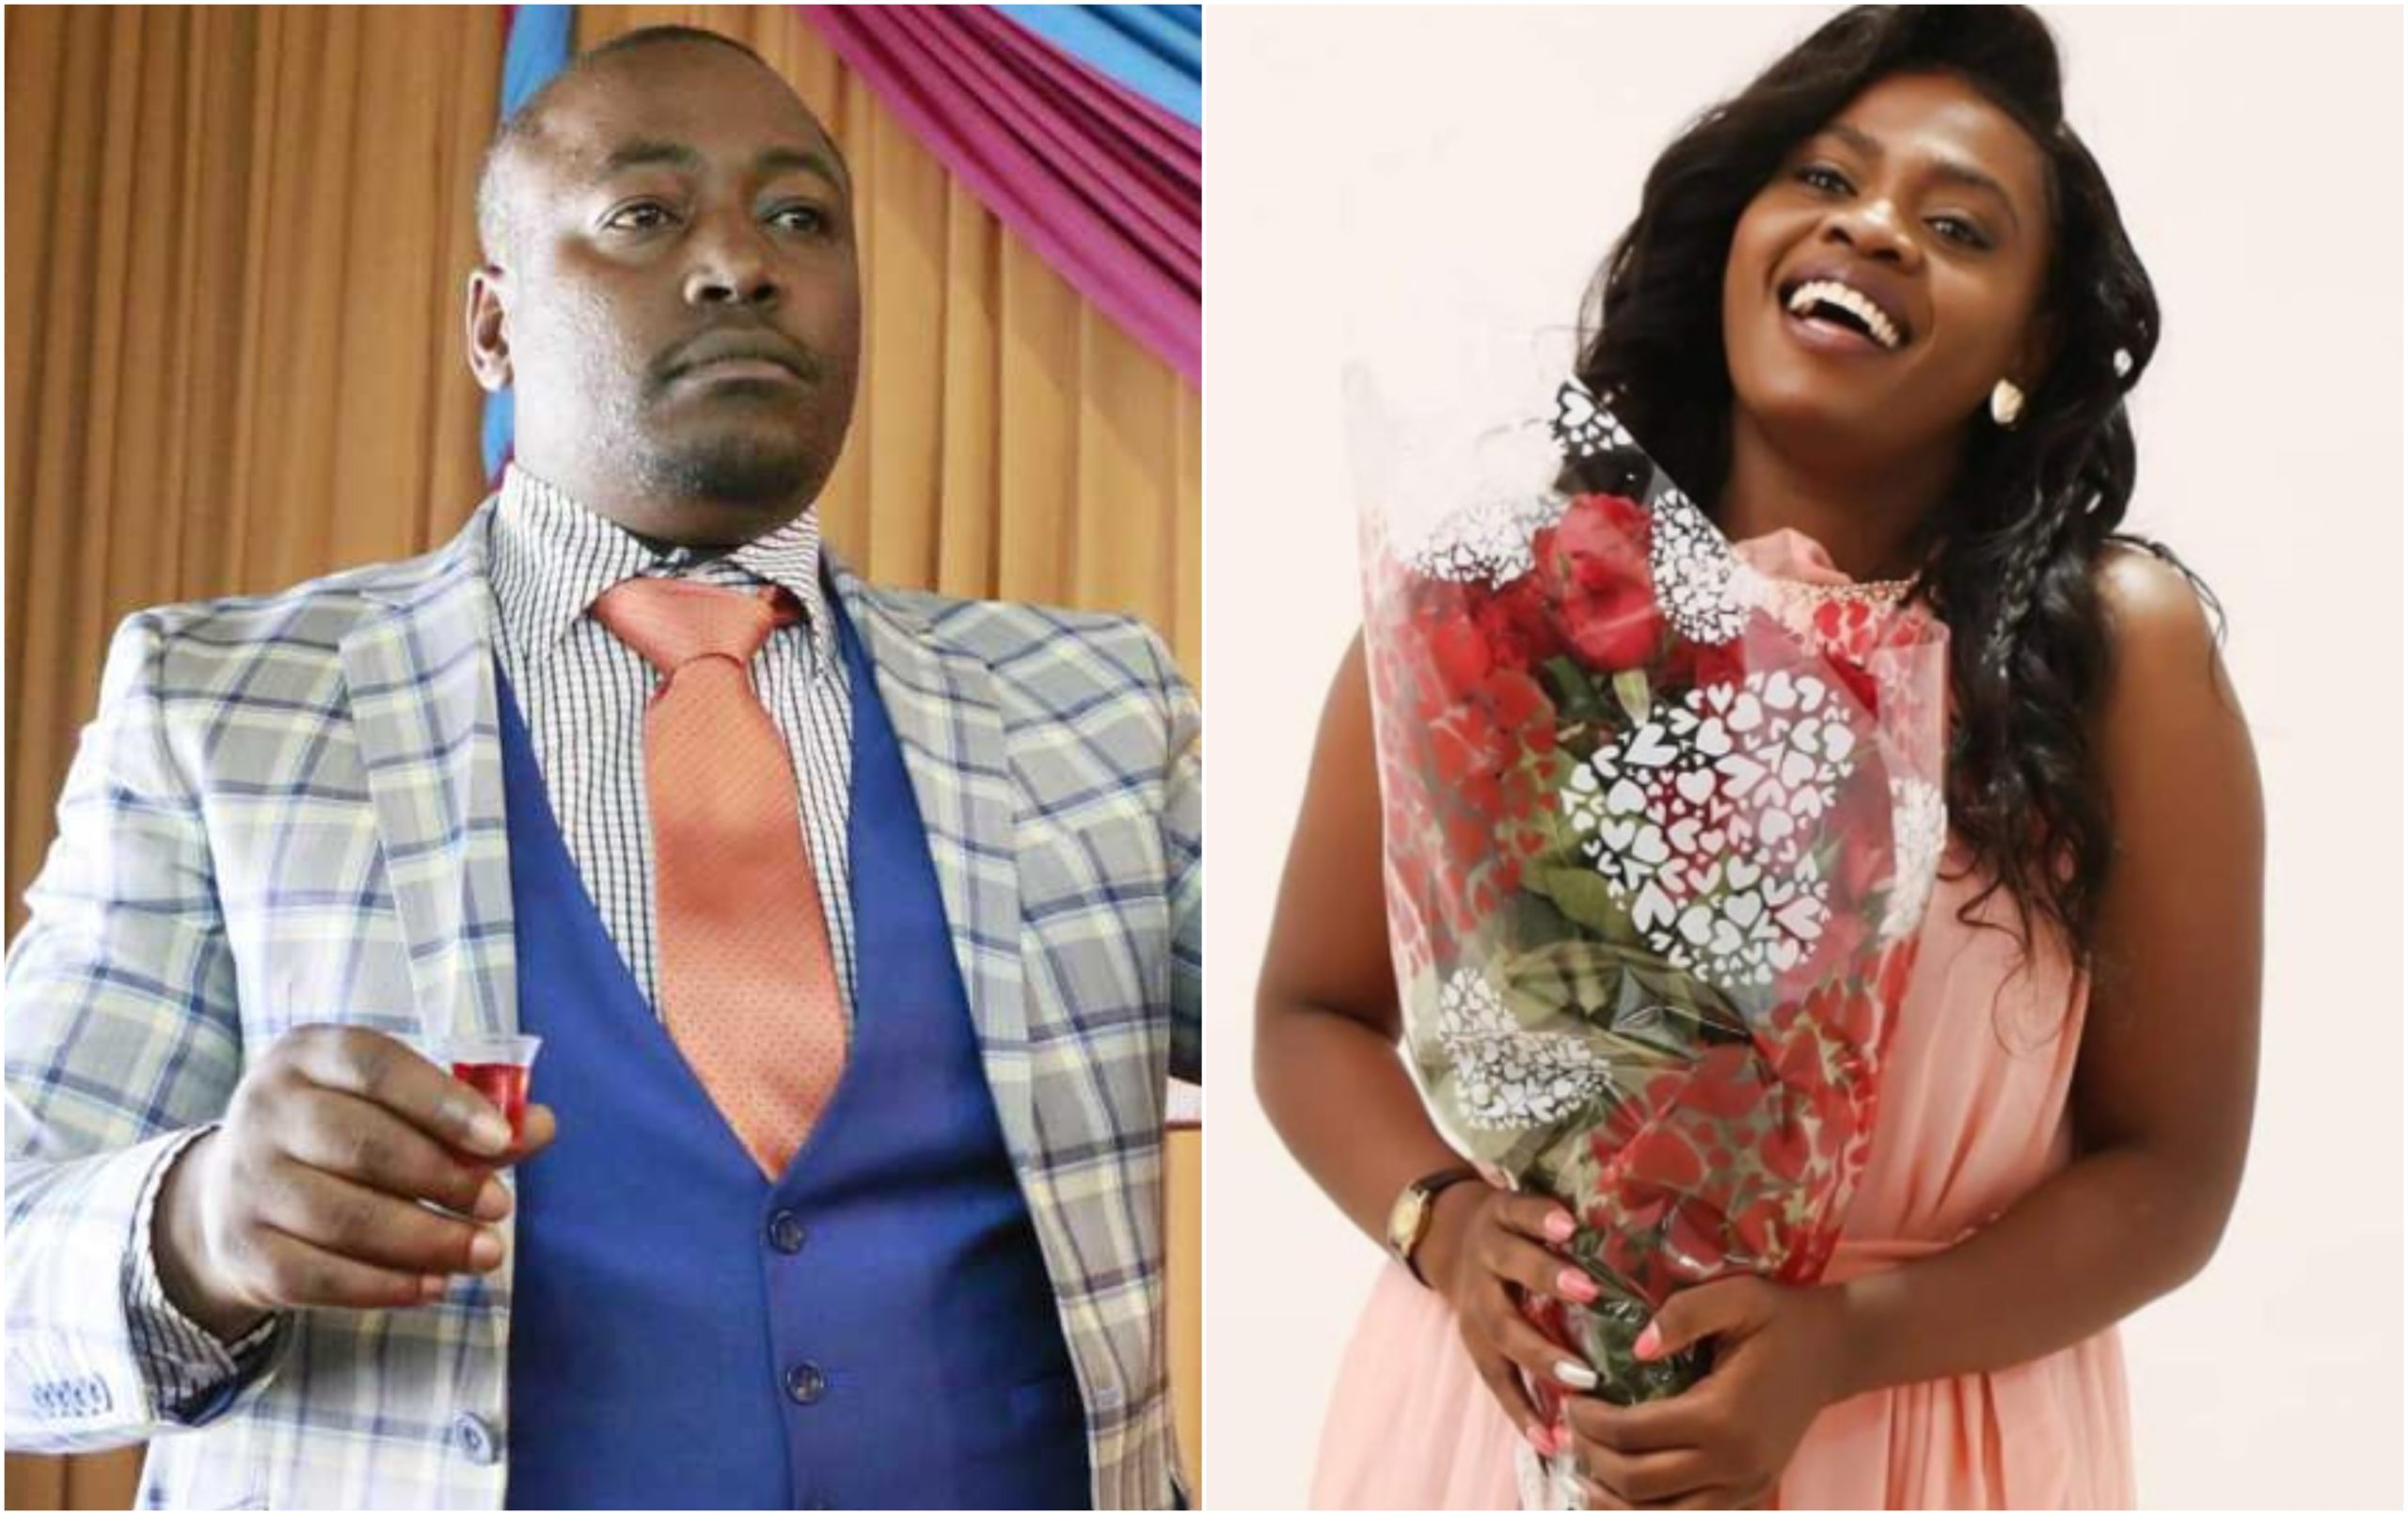 Single and searching! Pastor Kanyari's ex Betty Bayo reveals 10 qualities she's looking for in an ideal husband